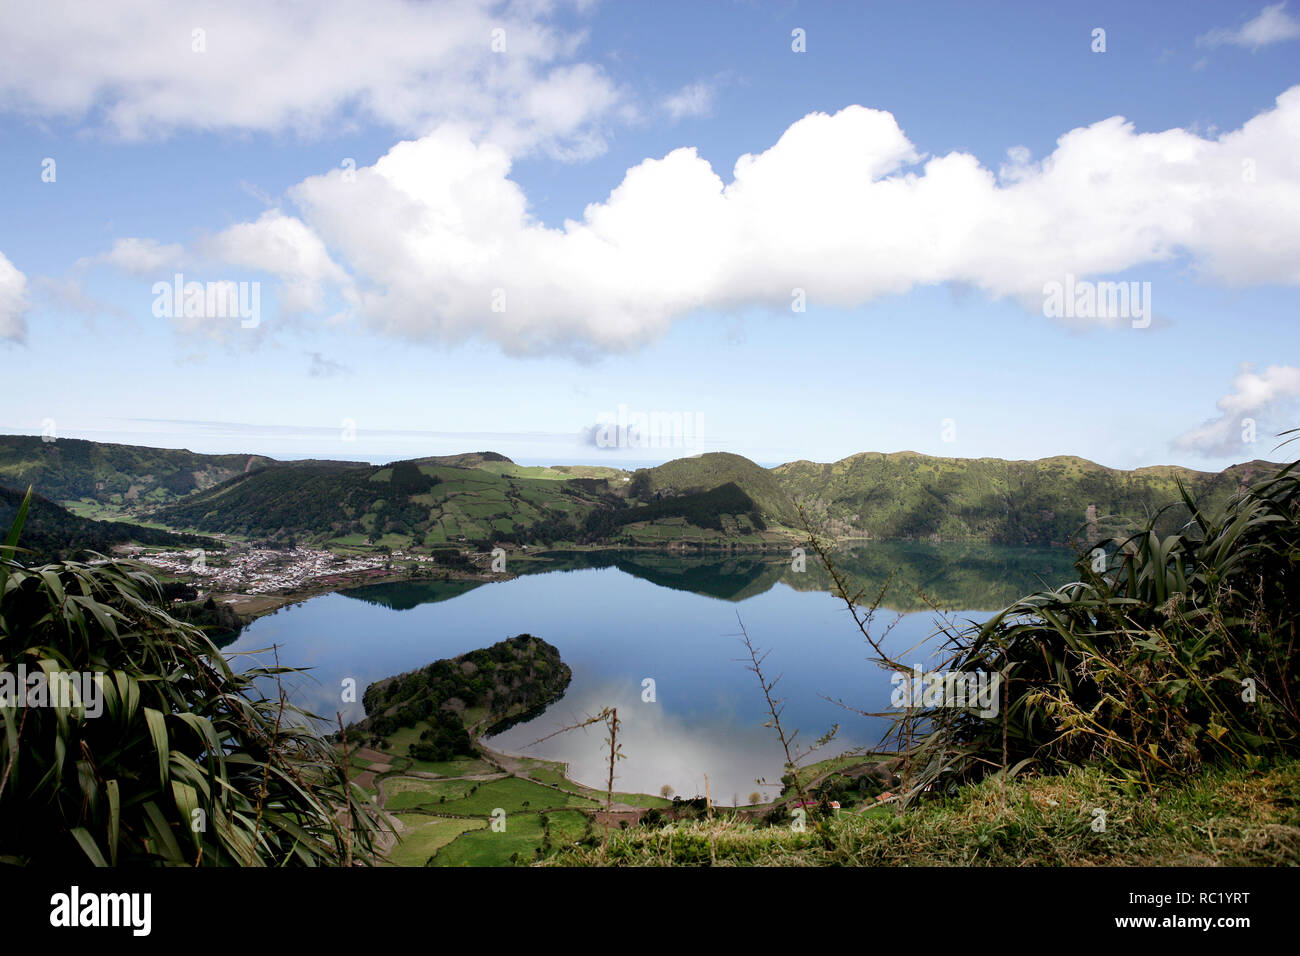 A great place to visit, the St. Michael Island, in Azores, Portugal, offers you a nice views from the sea and the nature. Stock Photo